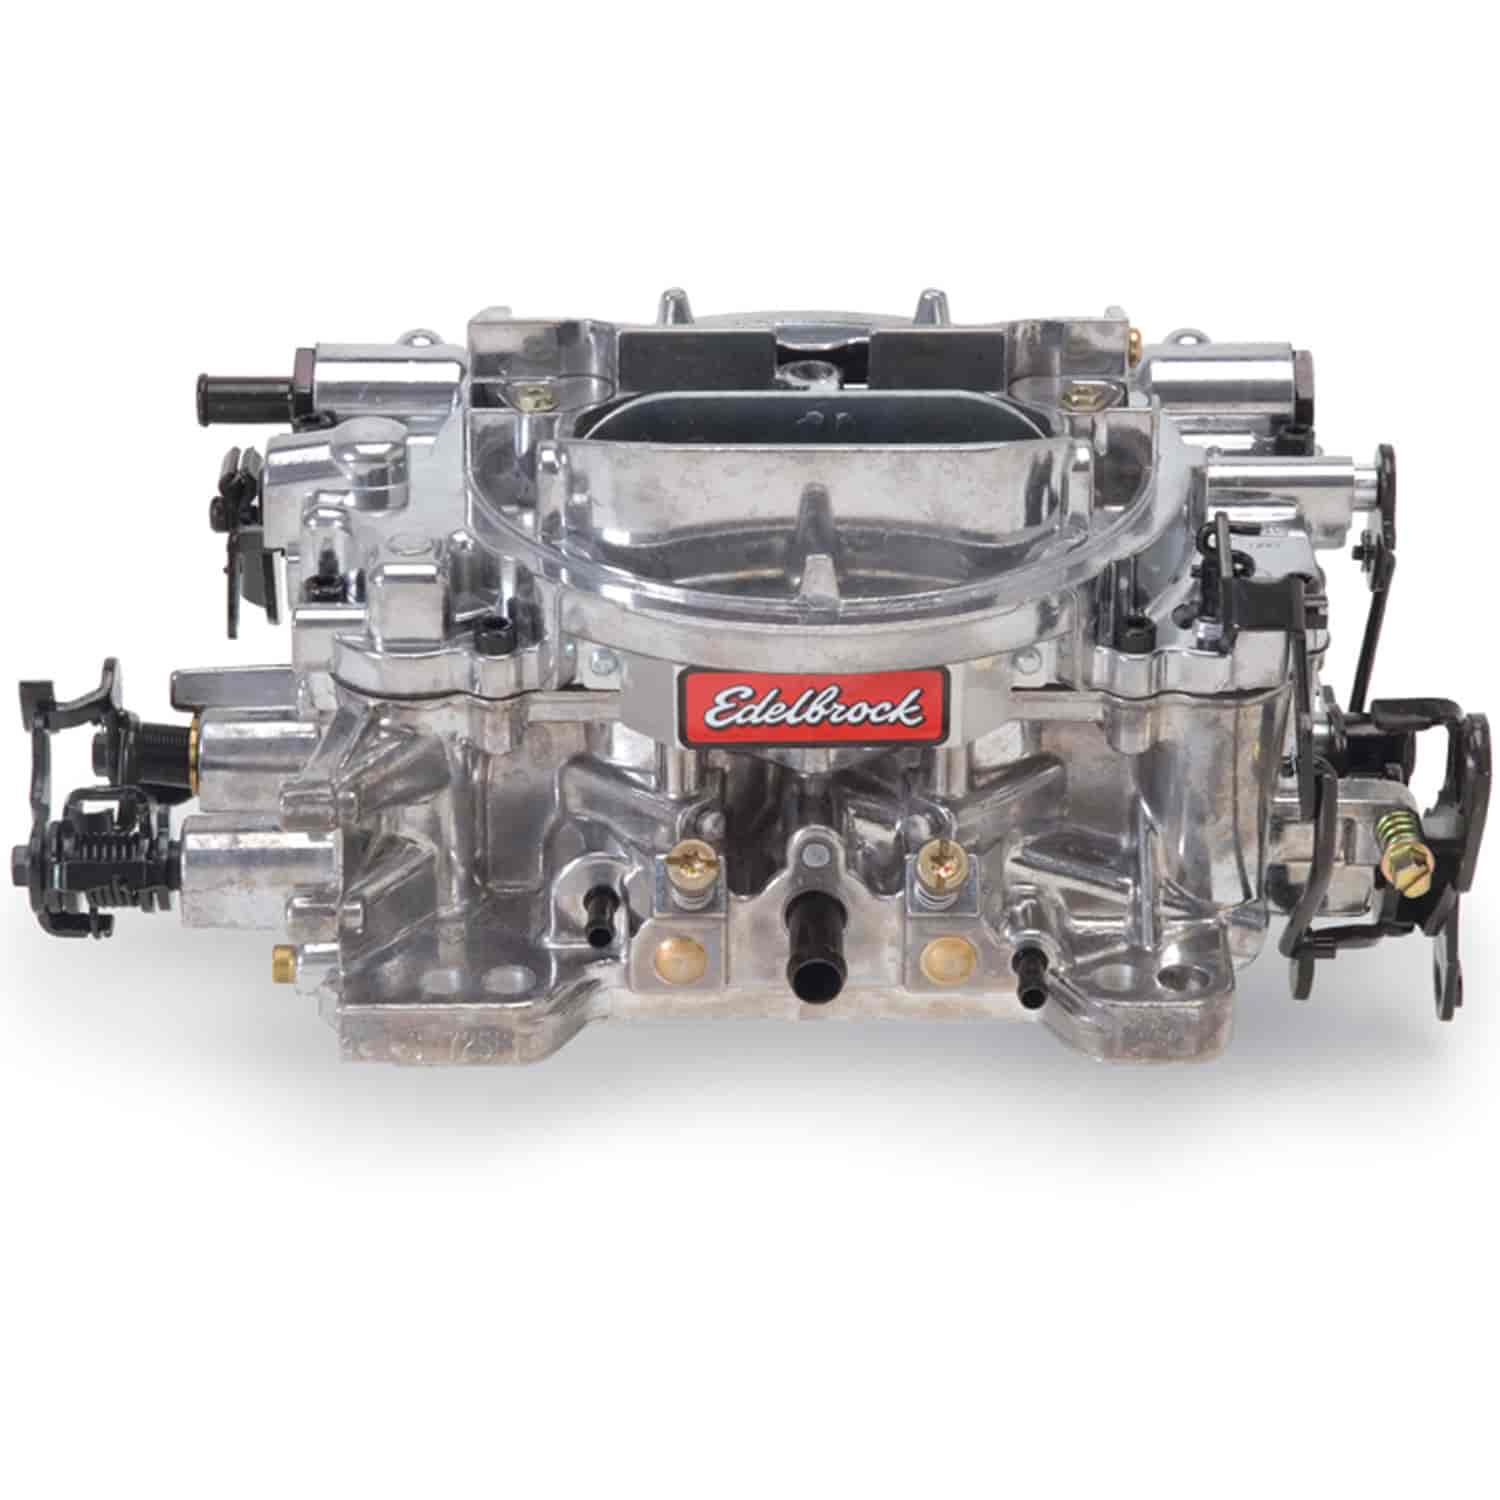 Edelbrock 1825 - Edelbrock Thunder Series AVS Carburetors